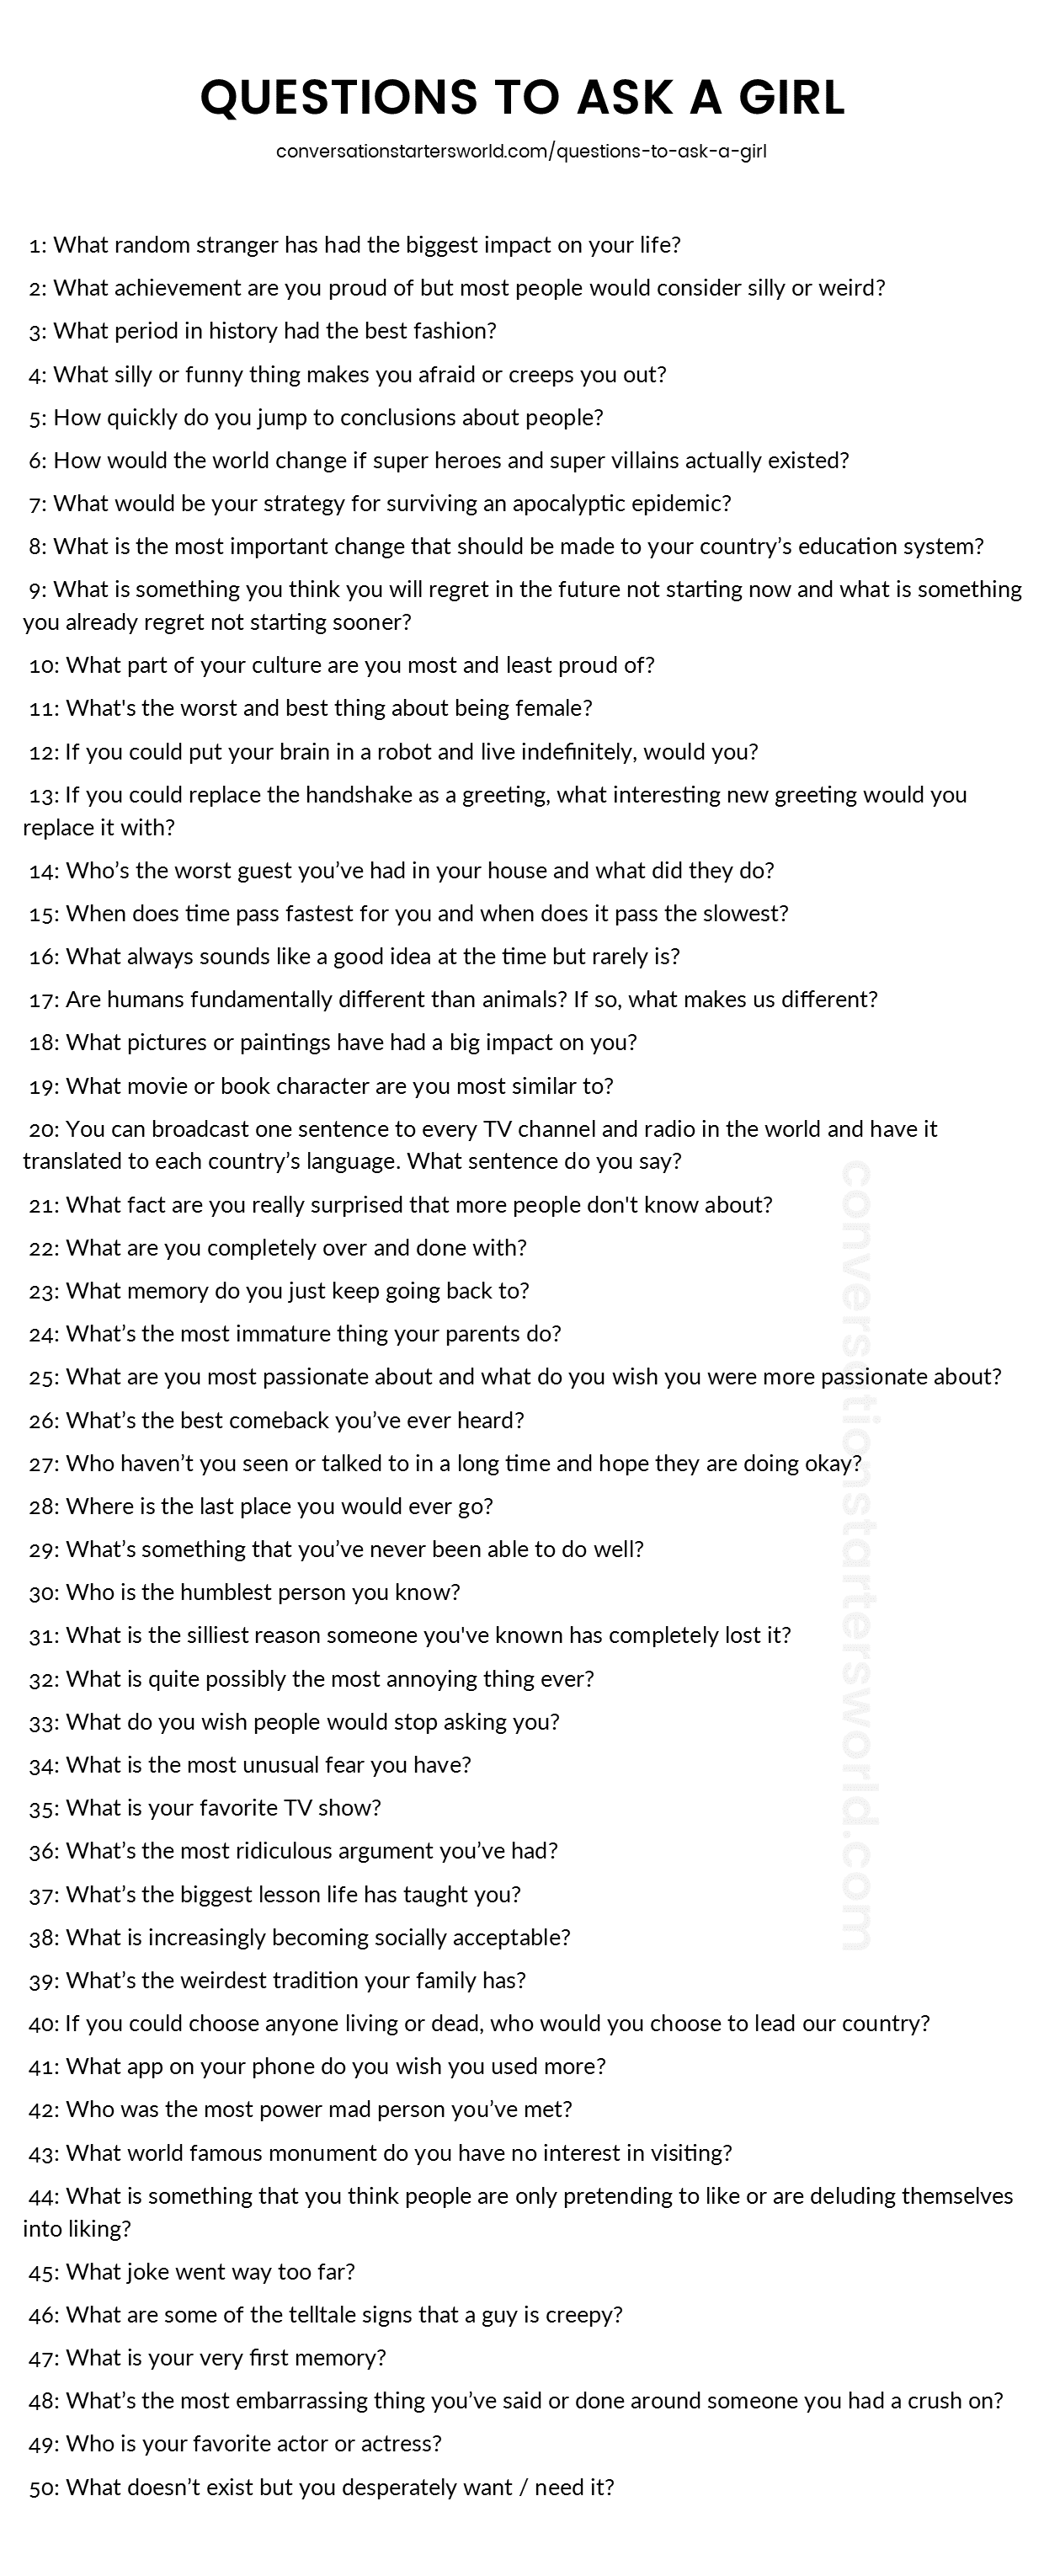 Questions To Ask A Girl To Keep A Conversation Going